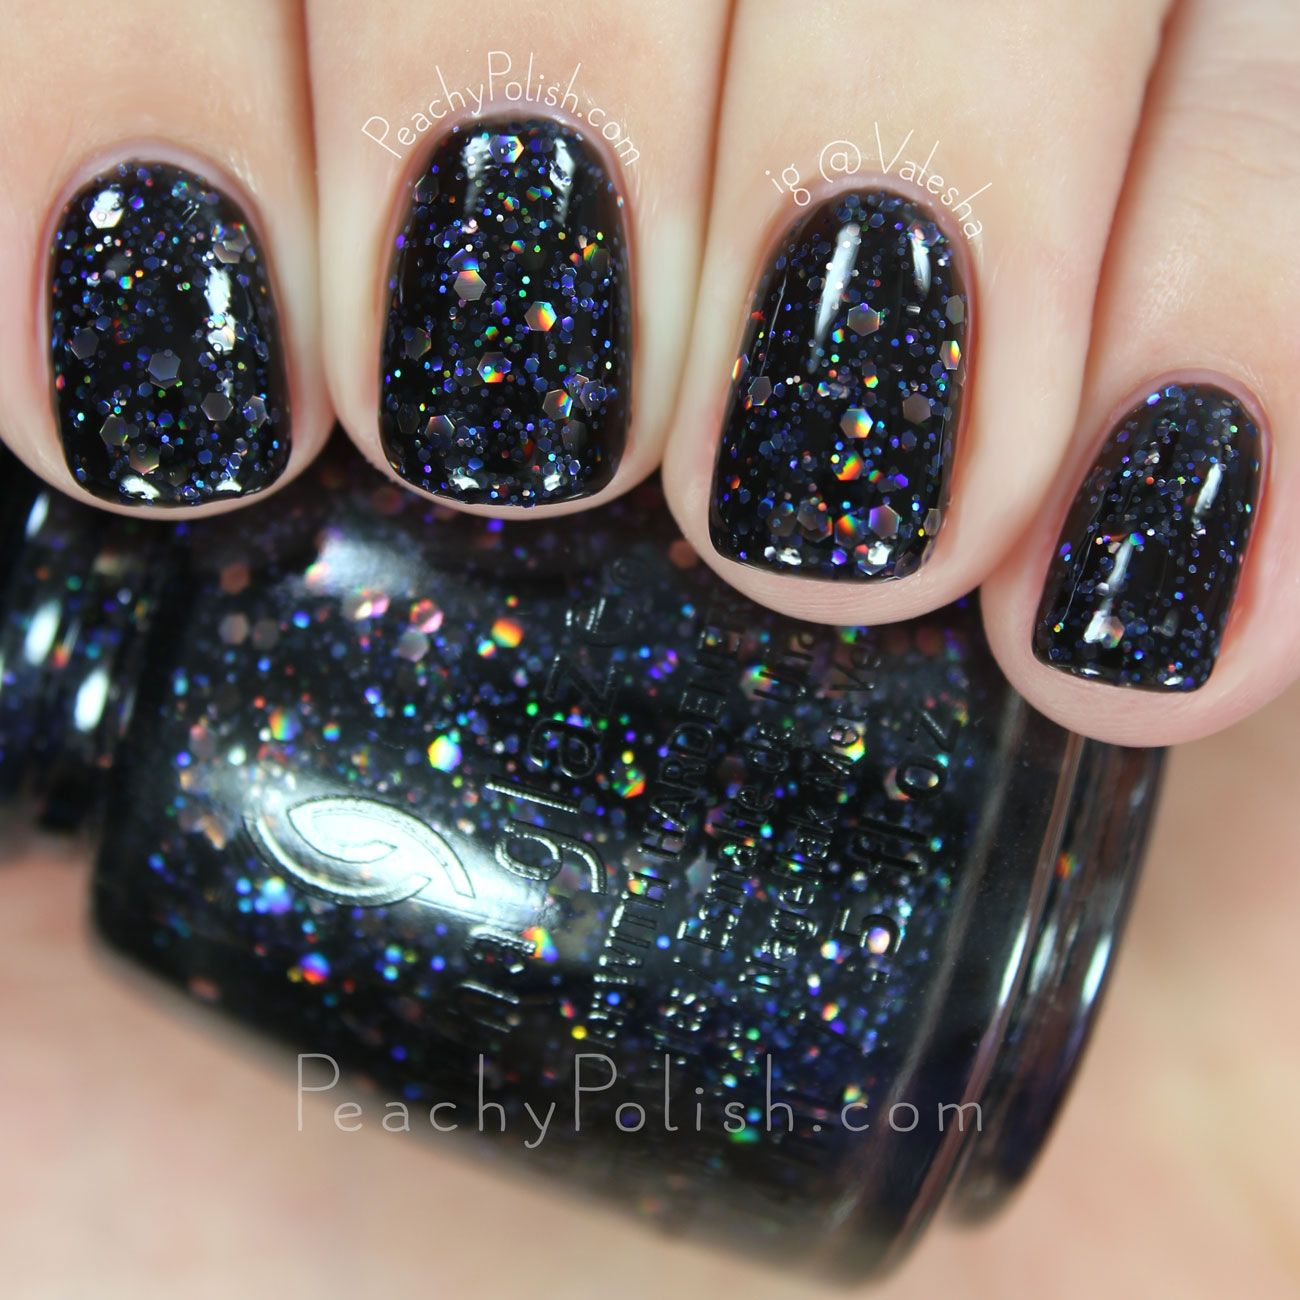 China Glaze Holiday 2015 Cheers! Collection Swatches